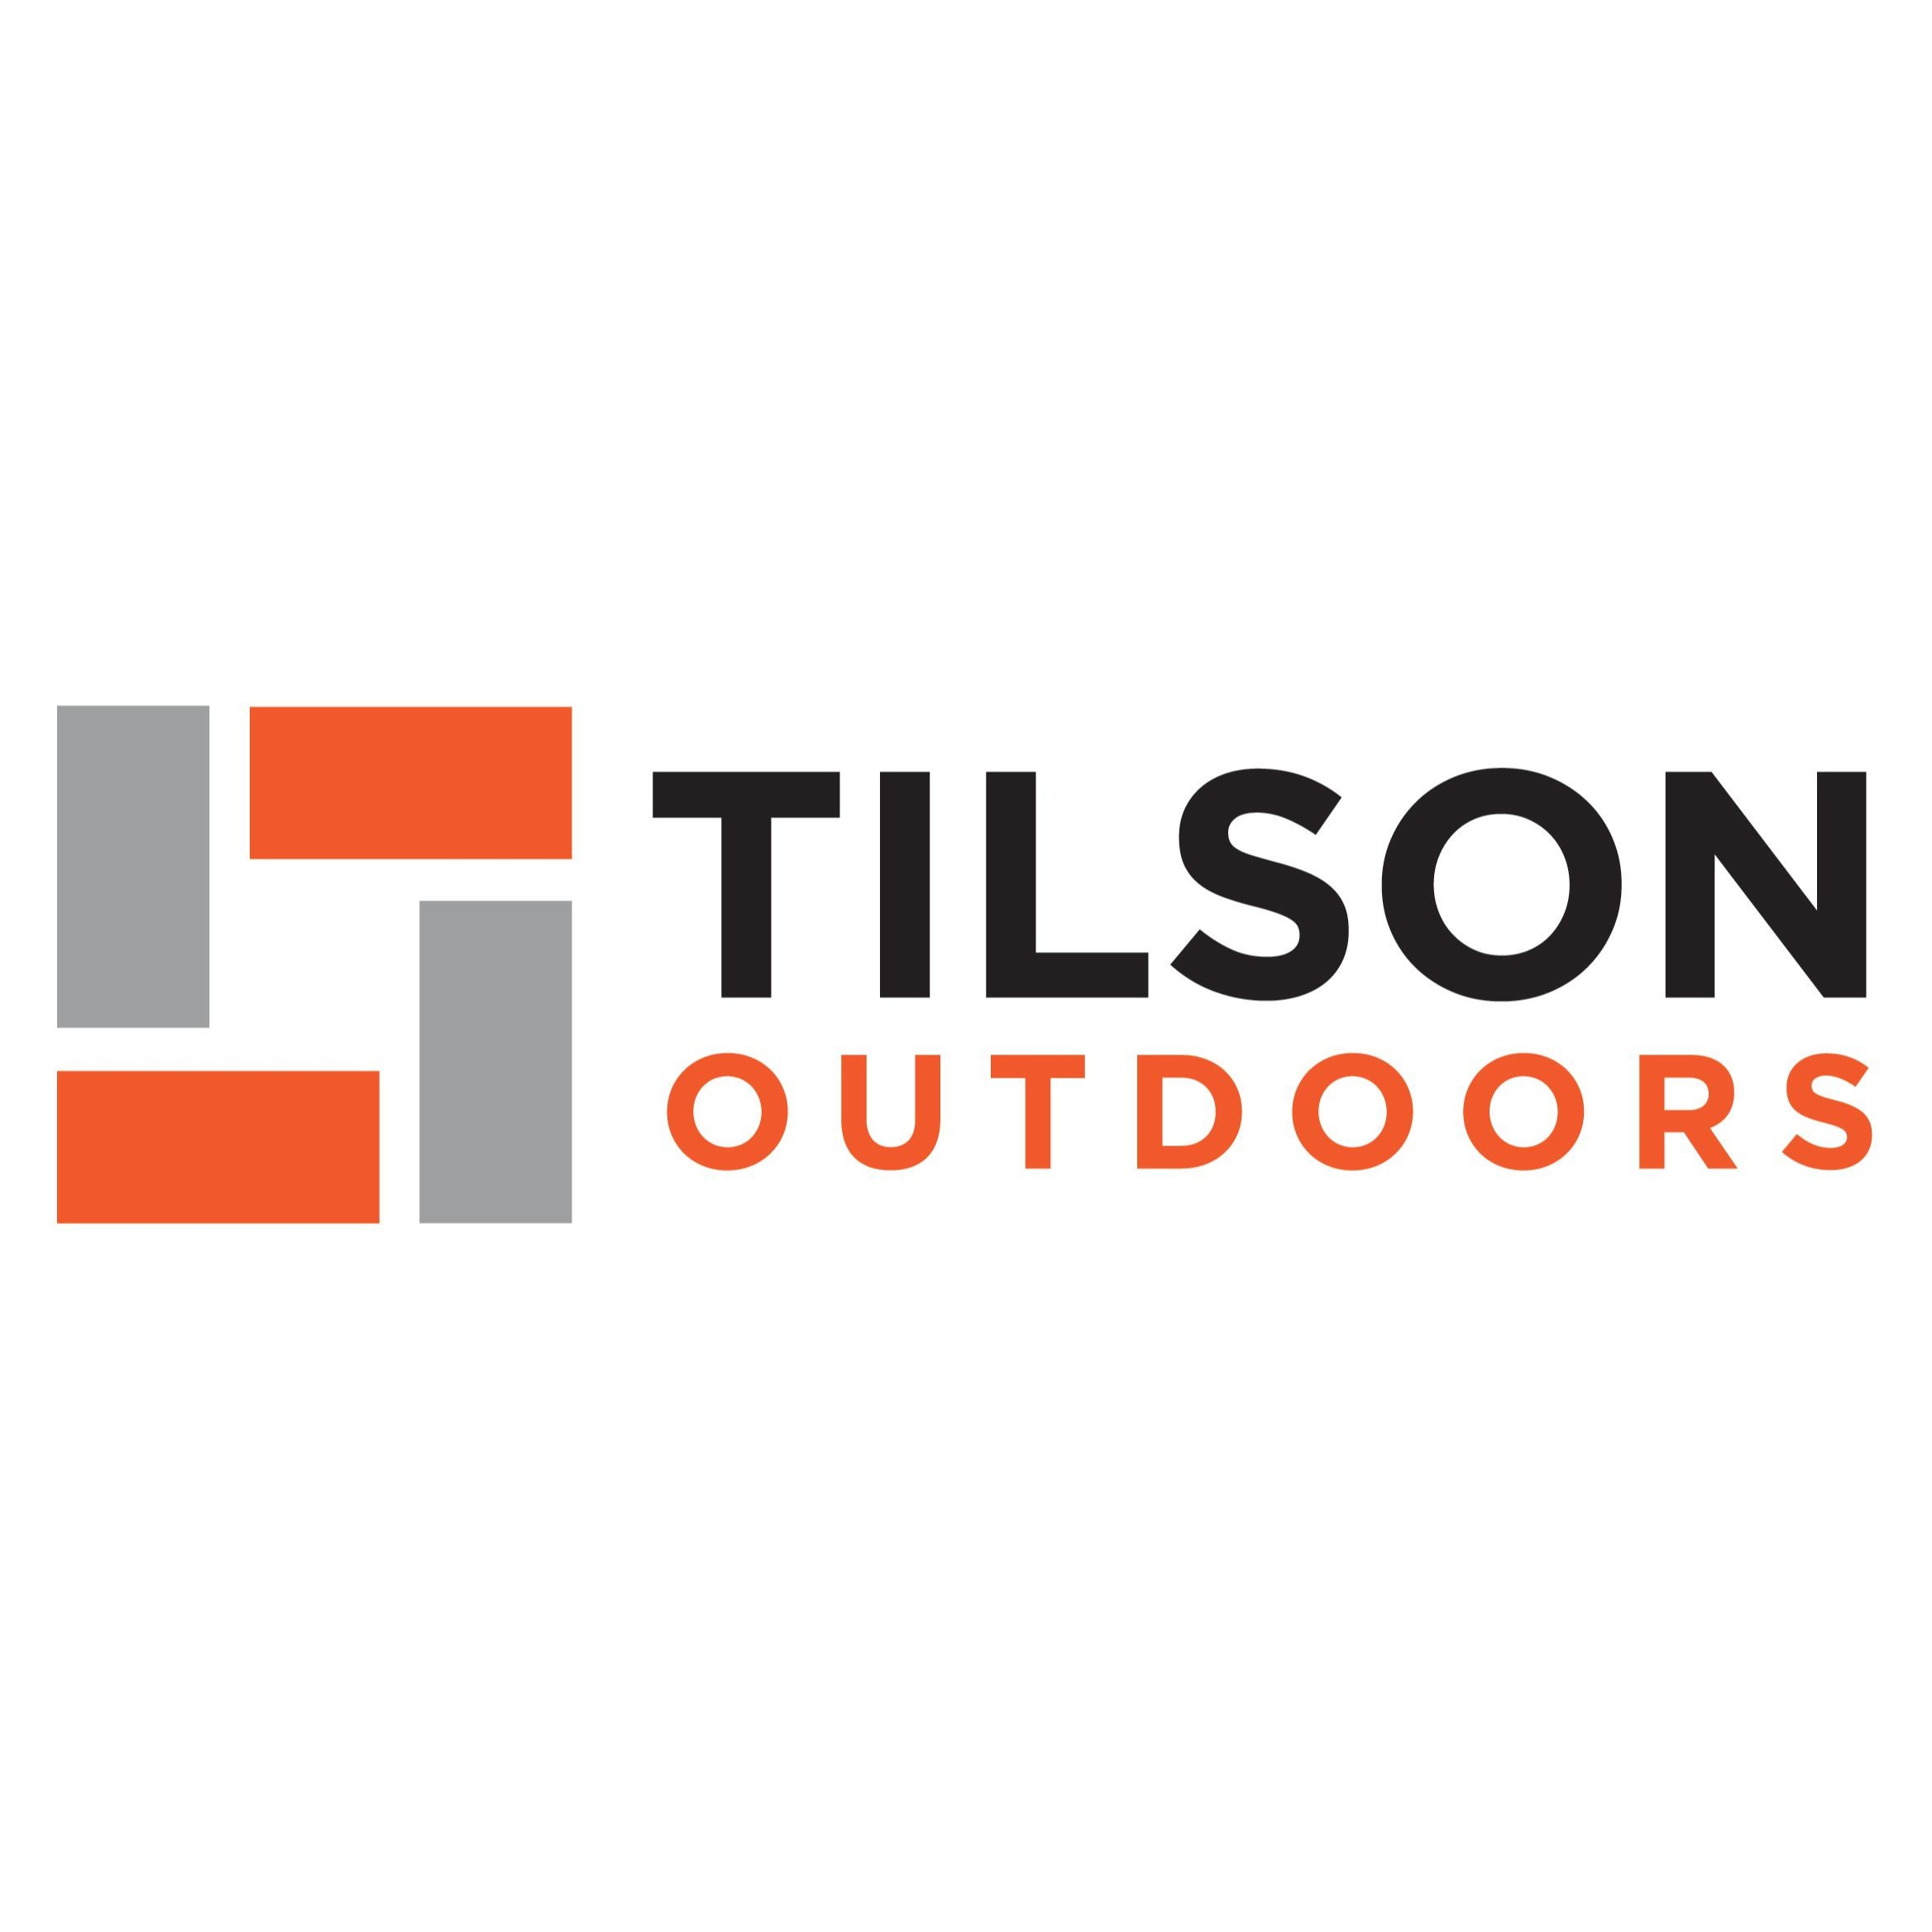 Tilson Outdoors